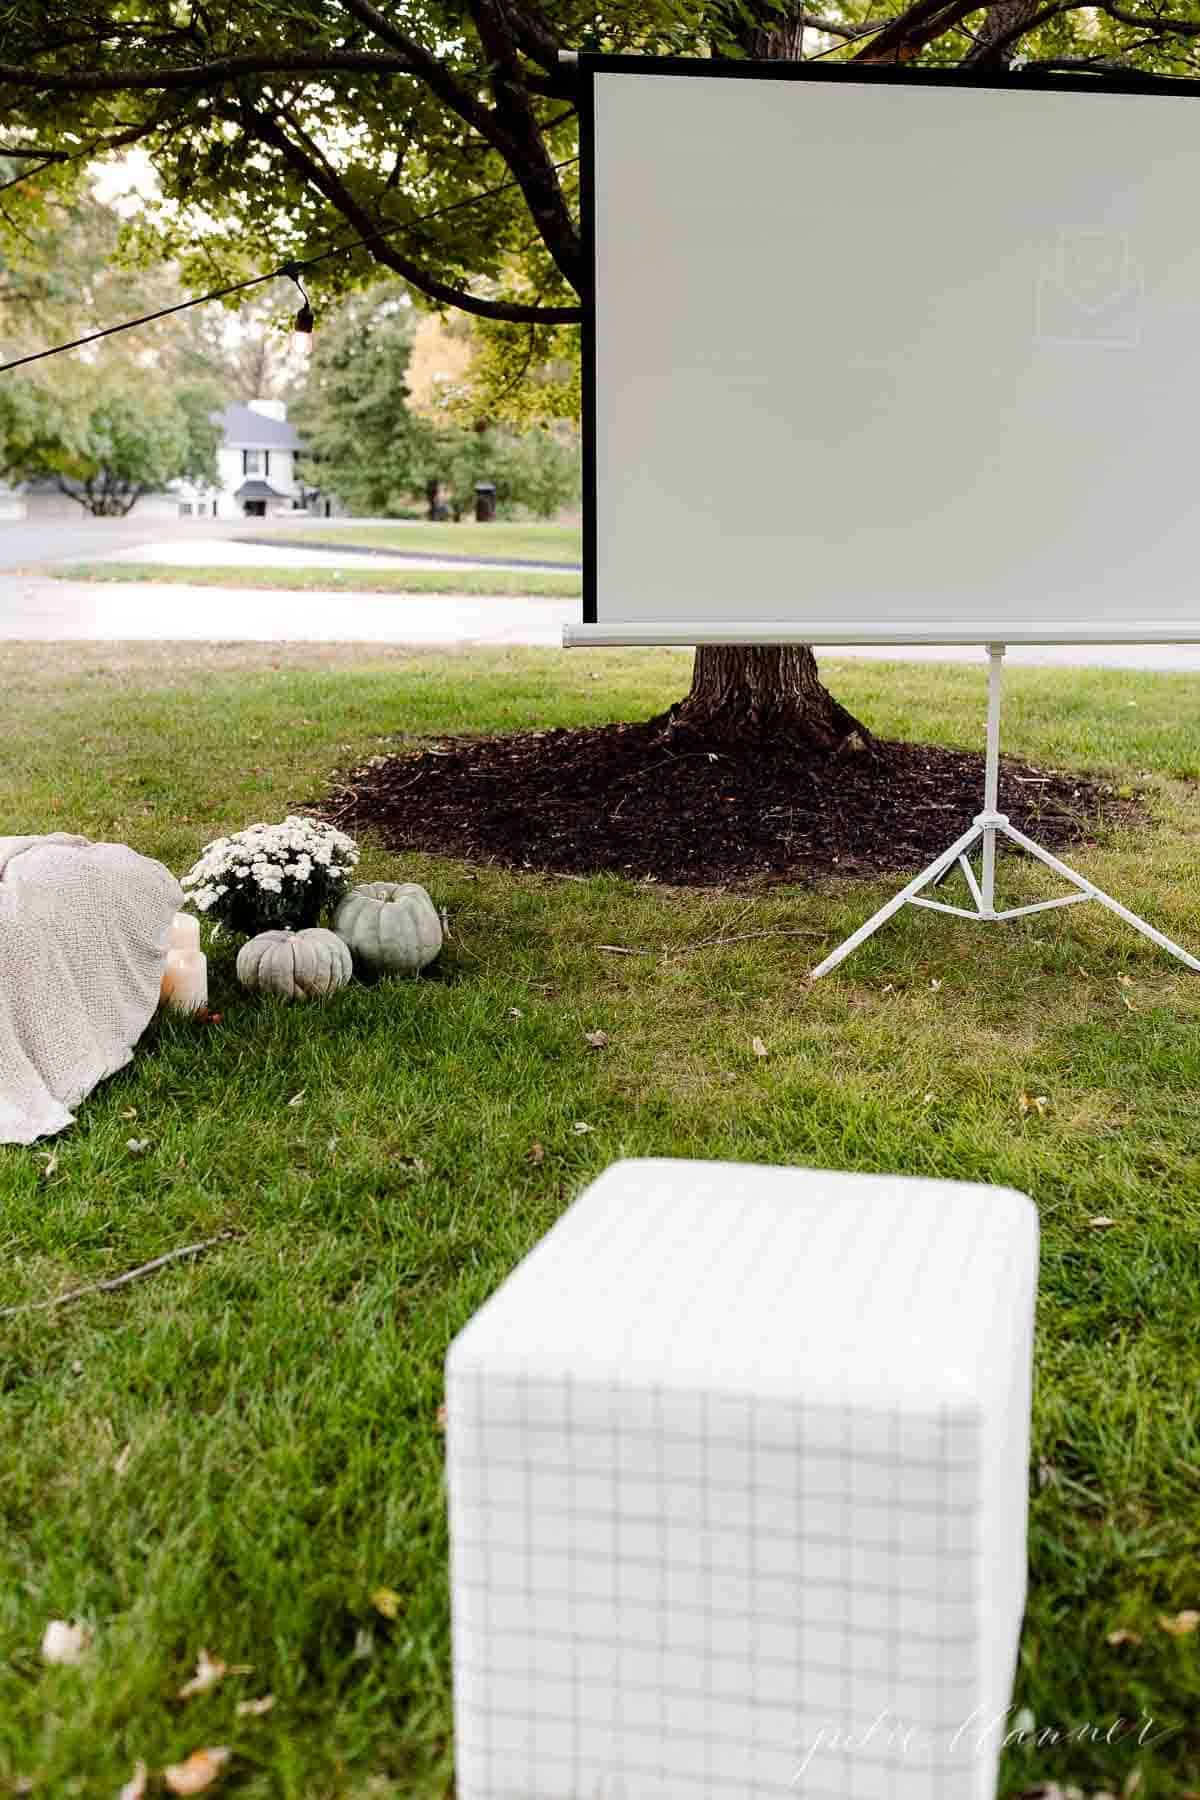 A yard set up with an outdoor movie projector screen in the fall.